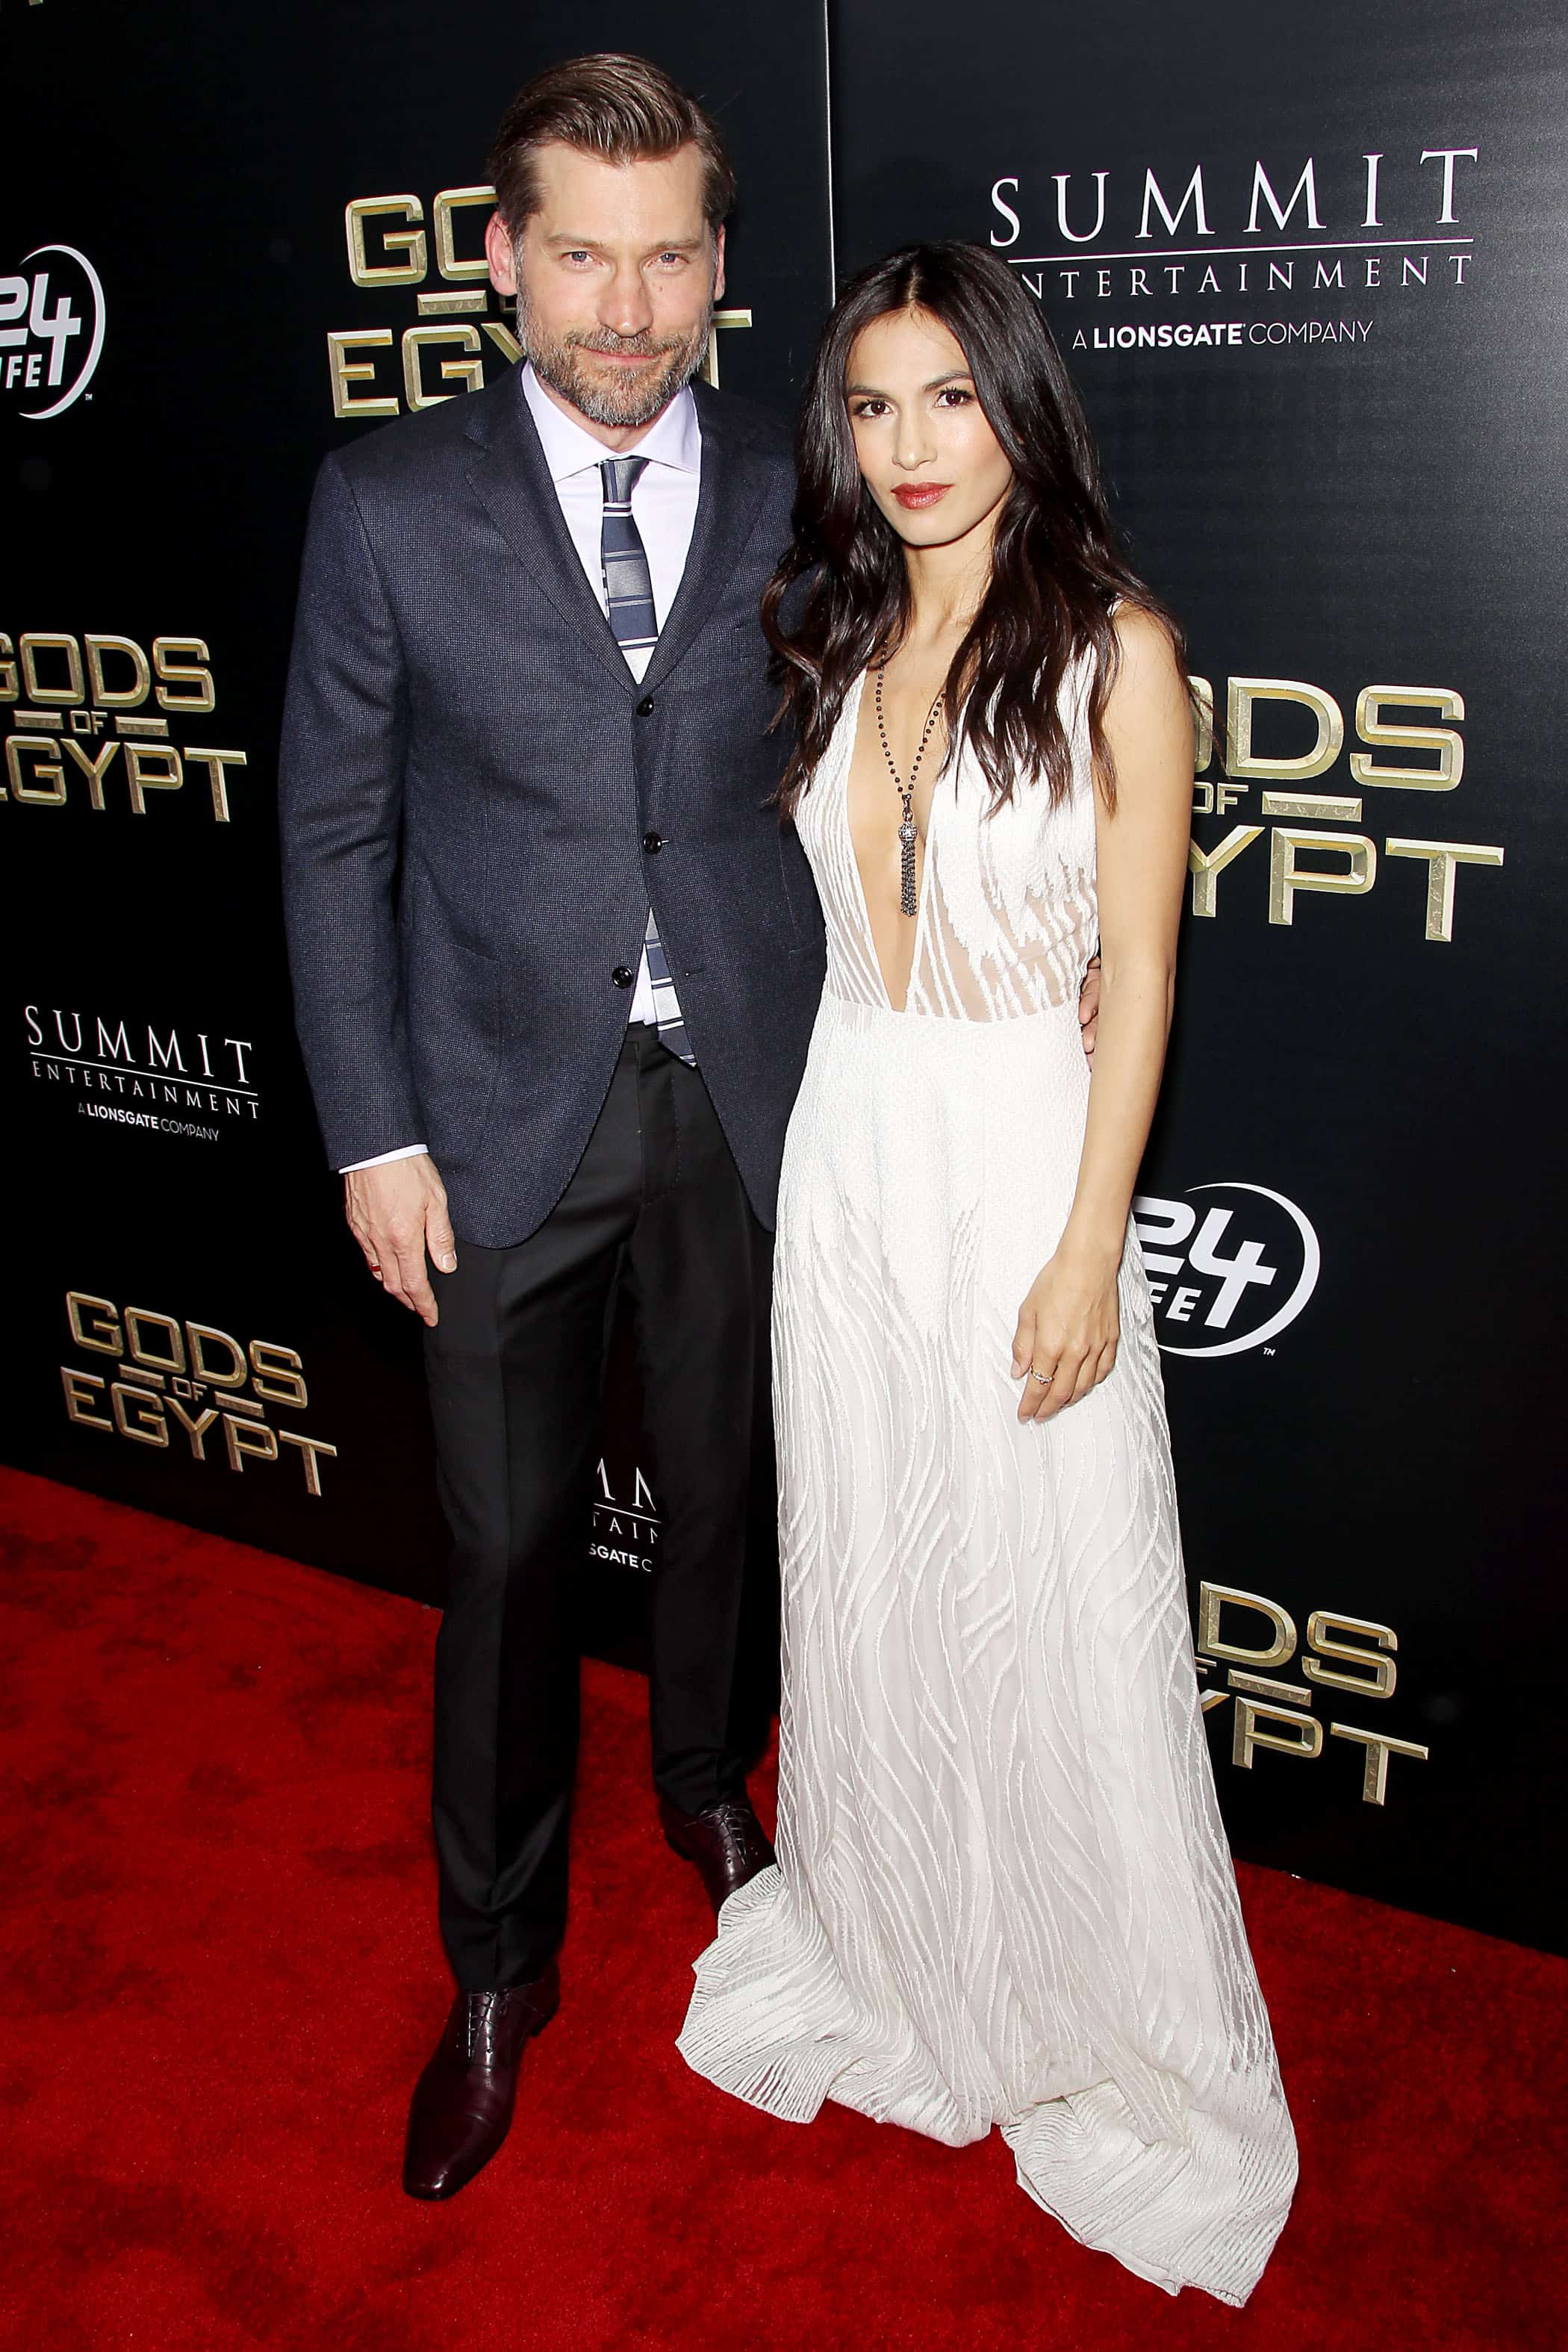 """- New York, NY - 2/24/16 - Summit Entertainment - A Lionsgate Company Presents the New York Premiere of """"Gods of Egypt"""" -PICTURED: Nikolaj Coster-Waldau, Elodie Yung -PHOTO by: Marion Curtis/StarPix -FILENAME: MC_16_01084045.JPG -LOCATION: AMC Lowes Lincoln Square 13 Startraks Photo New York,  NY For licensing please call 212-414-9464  or email sales@startraksphoto.com Image may not be published in any way that is or might be deemed defamatory, libelous, pornographic, or obscene. Please consult our sales department for any clarification or question you may have. Startraks Photo reserves the right to pursue unauthorized users of this image. If you violate our intellectual property you may be liable for actual damages, loss of income, and profits you derive from the use of this image, and where appropriate, the cost of collection and/or statutory damages."""